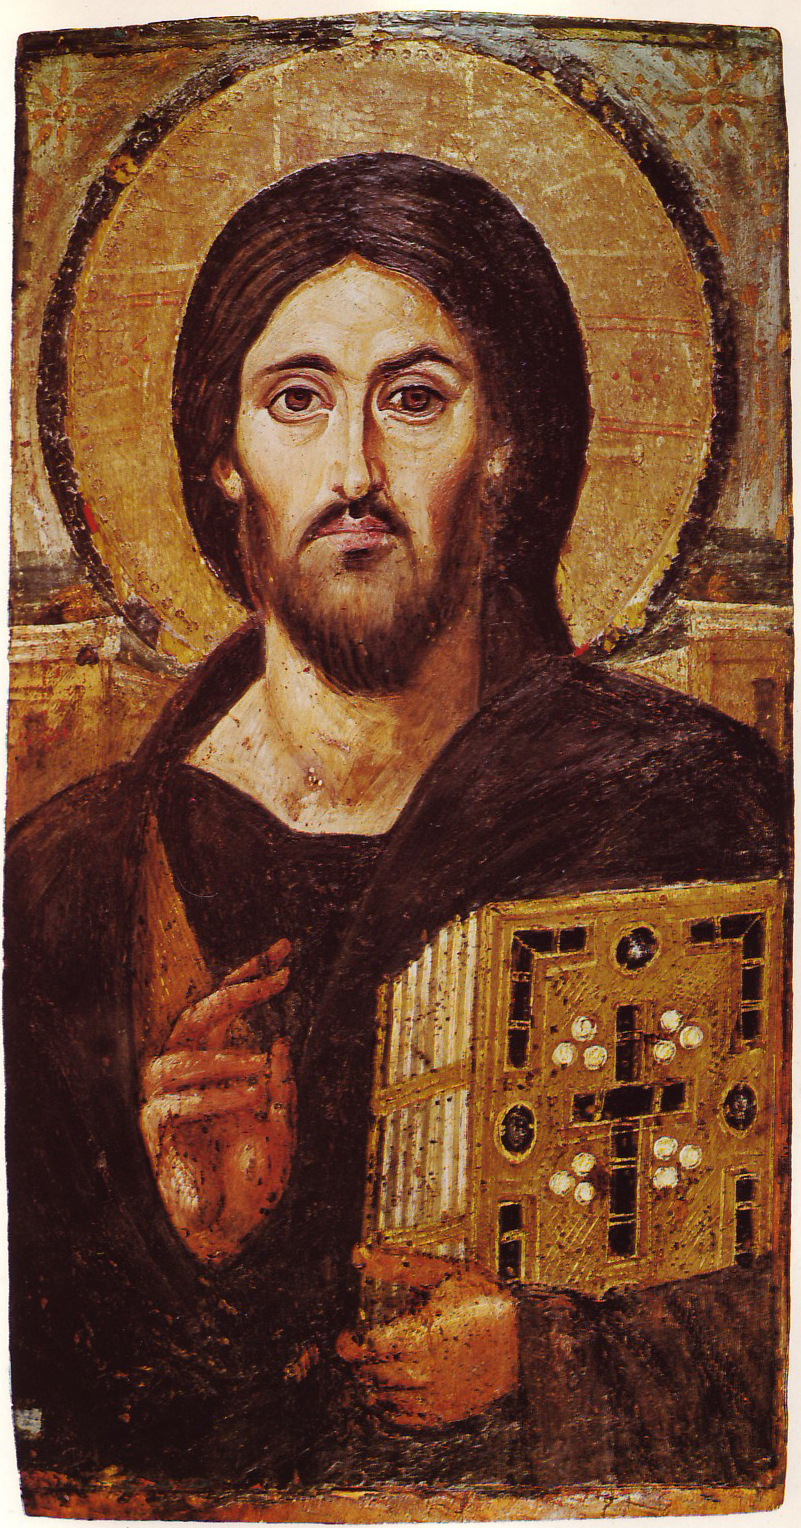 Image result for jesus icon site:wikimedia.org